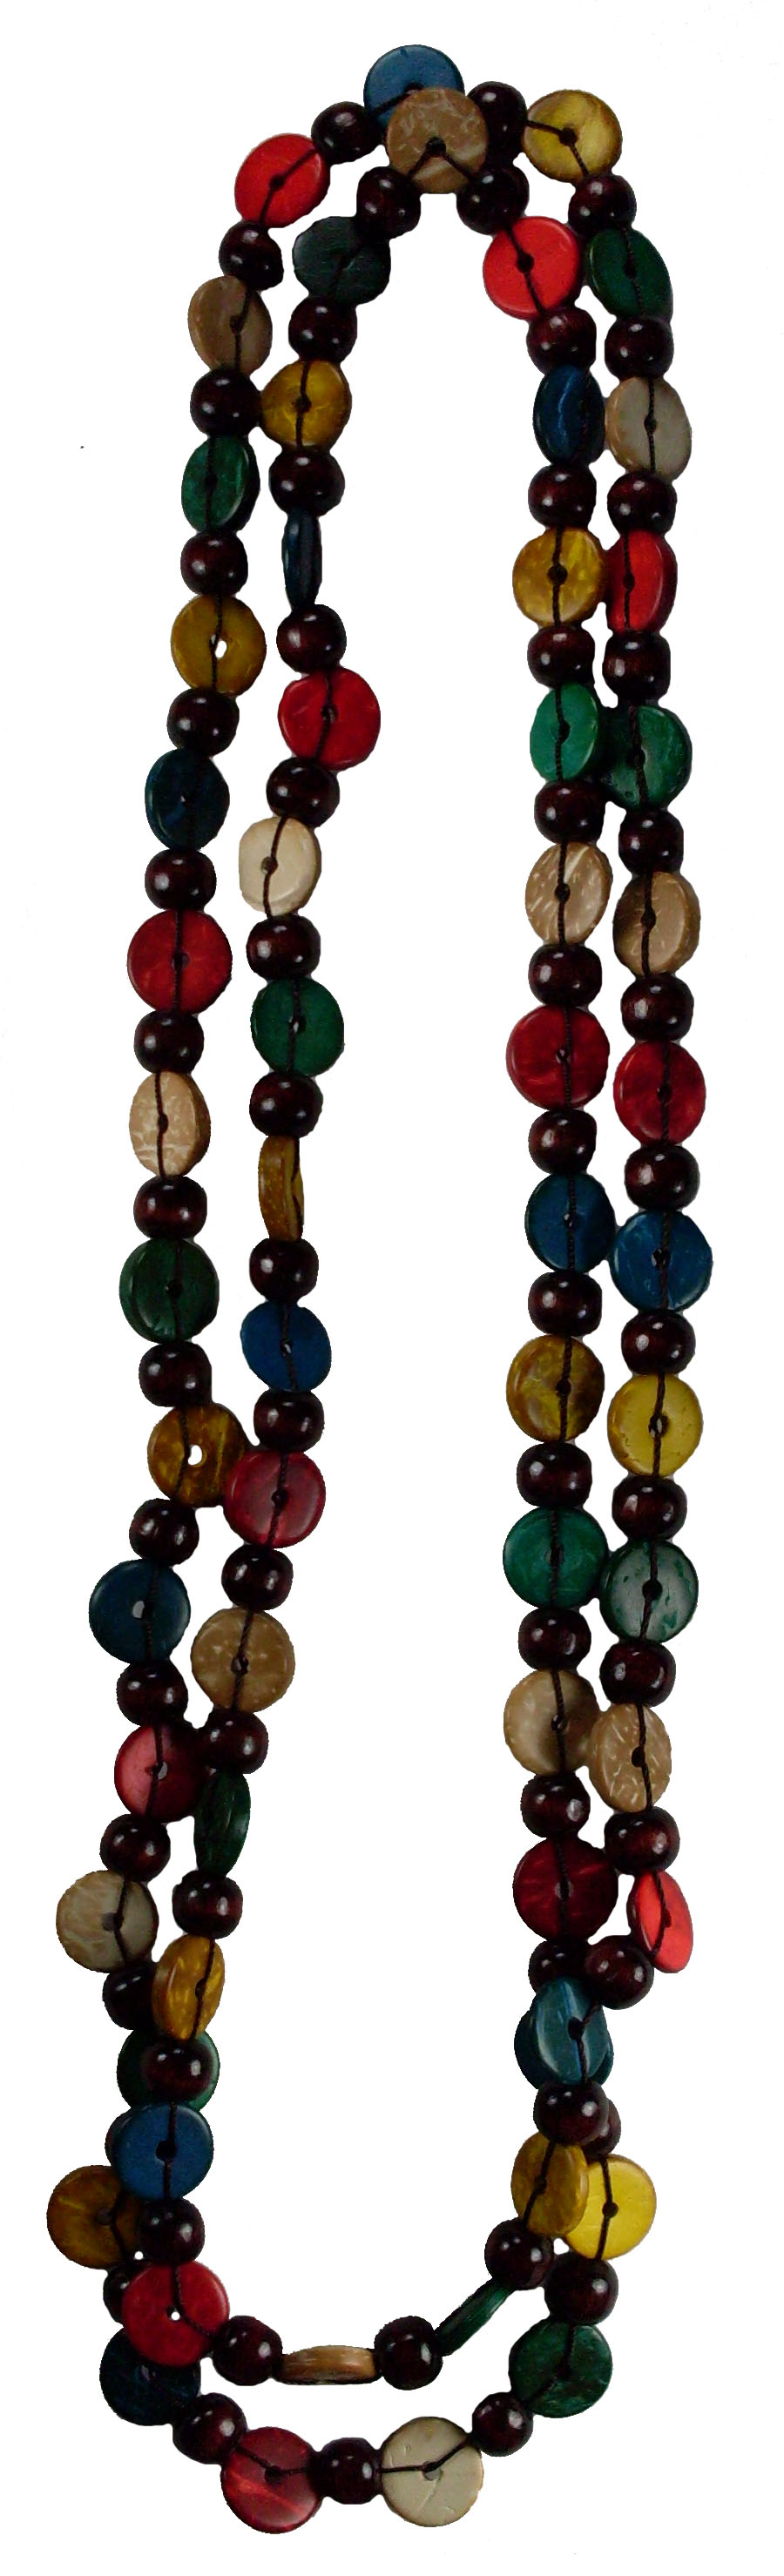 "Island Colored Coco 60"" Long Bead Necklace #3"